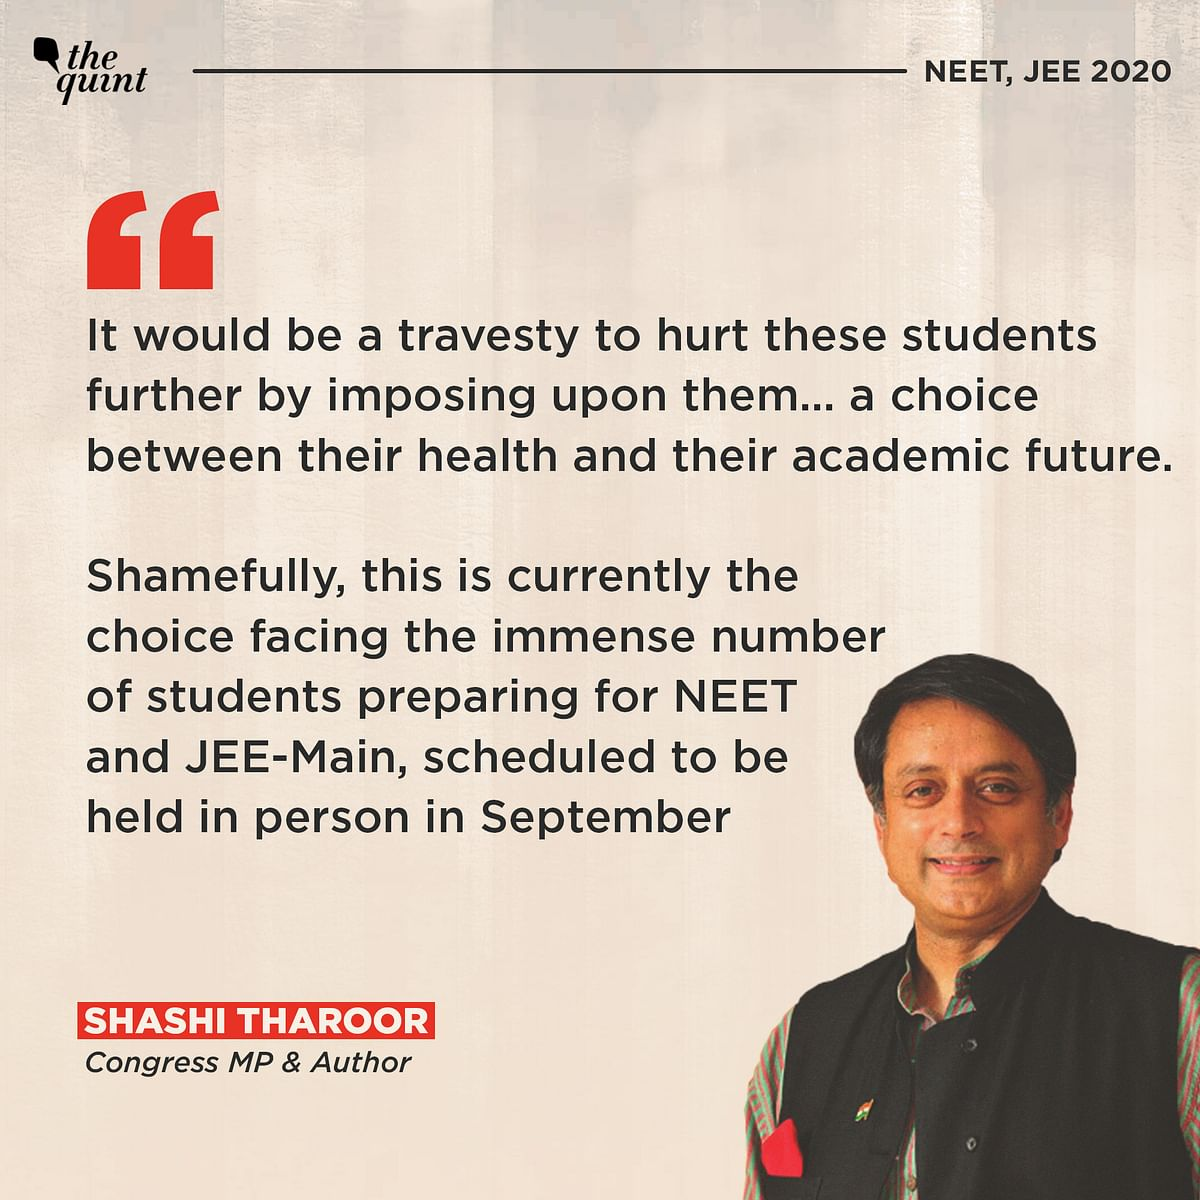 NEET, JEE 2020: Why BJP Must Listen To Reason – And The Opposition